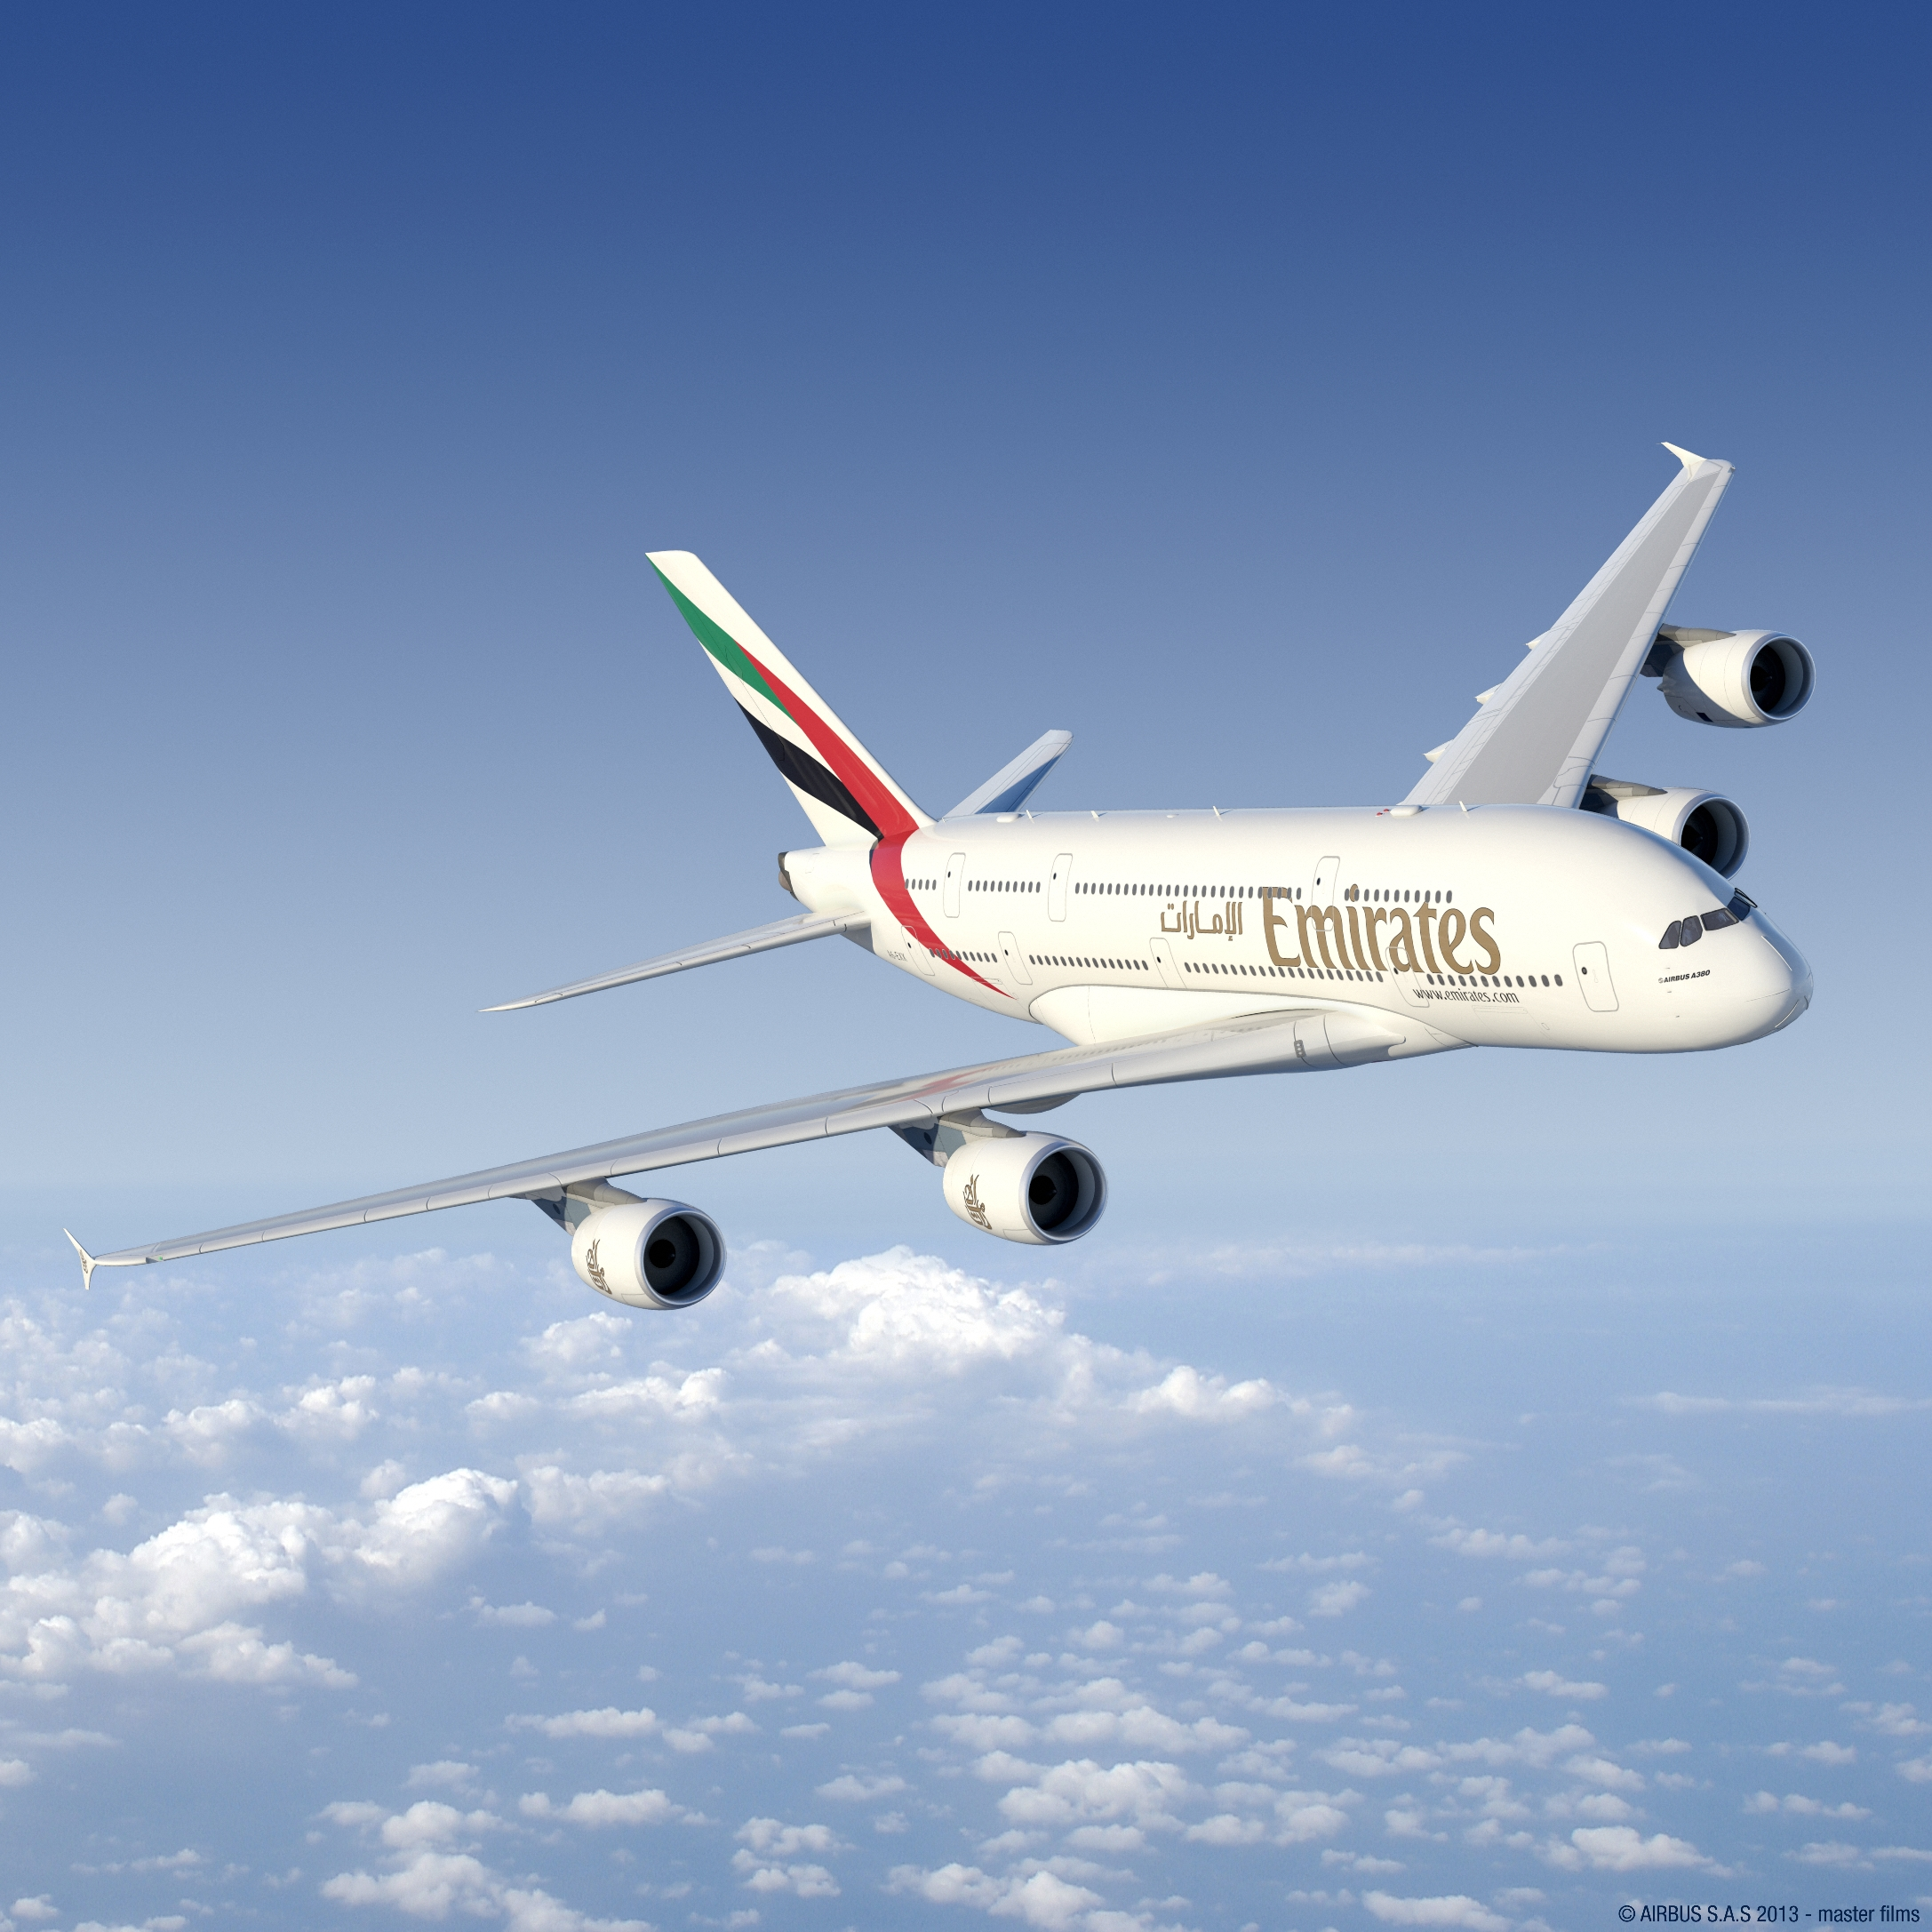 Over 85 million passengers have flown on the Emirates A380